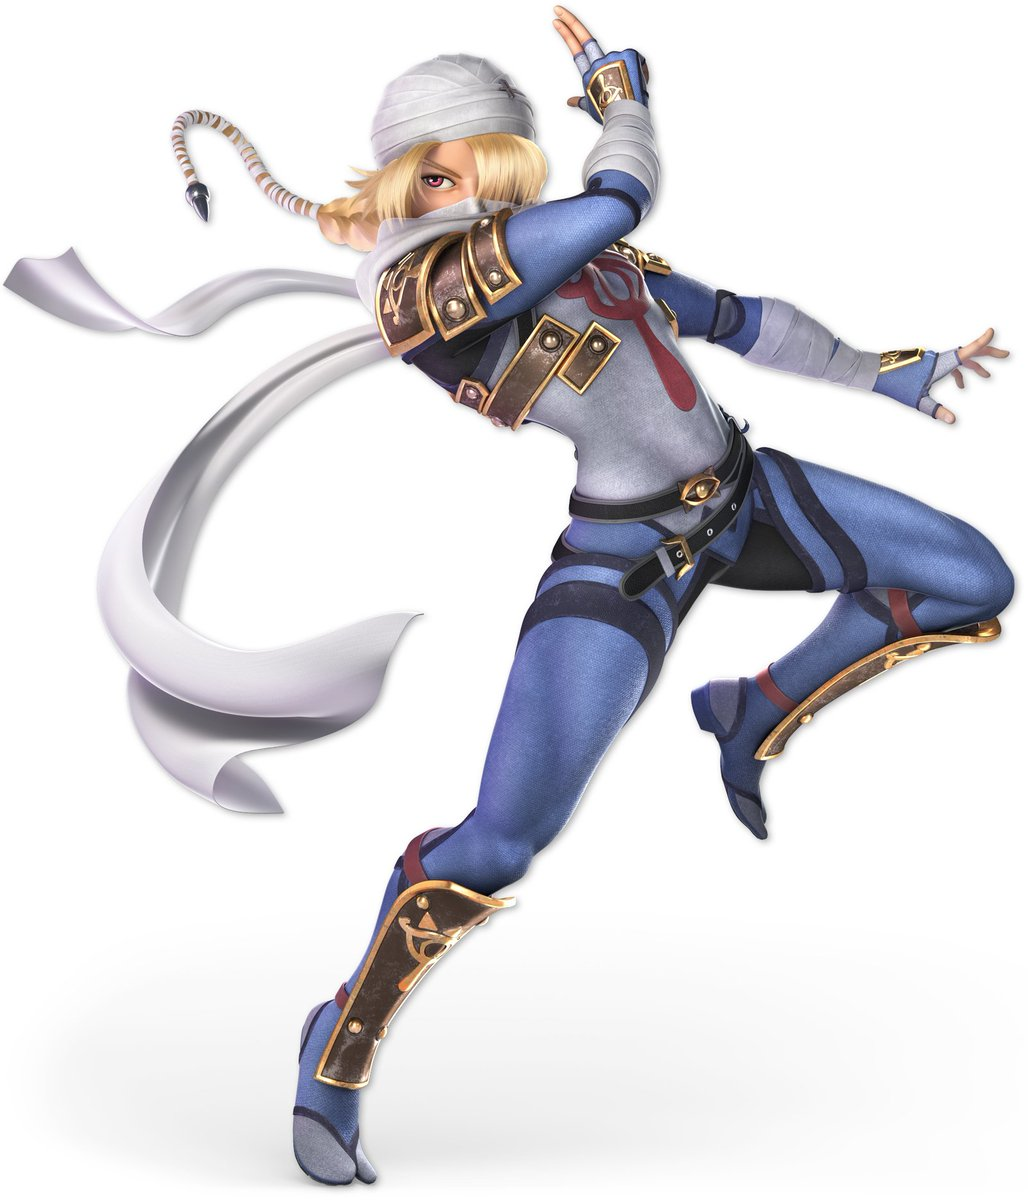 Stock battle, Sheik vs Ridley vs Marth vs Lucina, on PAC-LAND, stage morph on to Smashville, Medium Items, Smash Meter On <br>http://pic.twitter.com/IjmrJIenJp